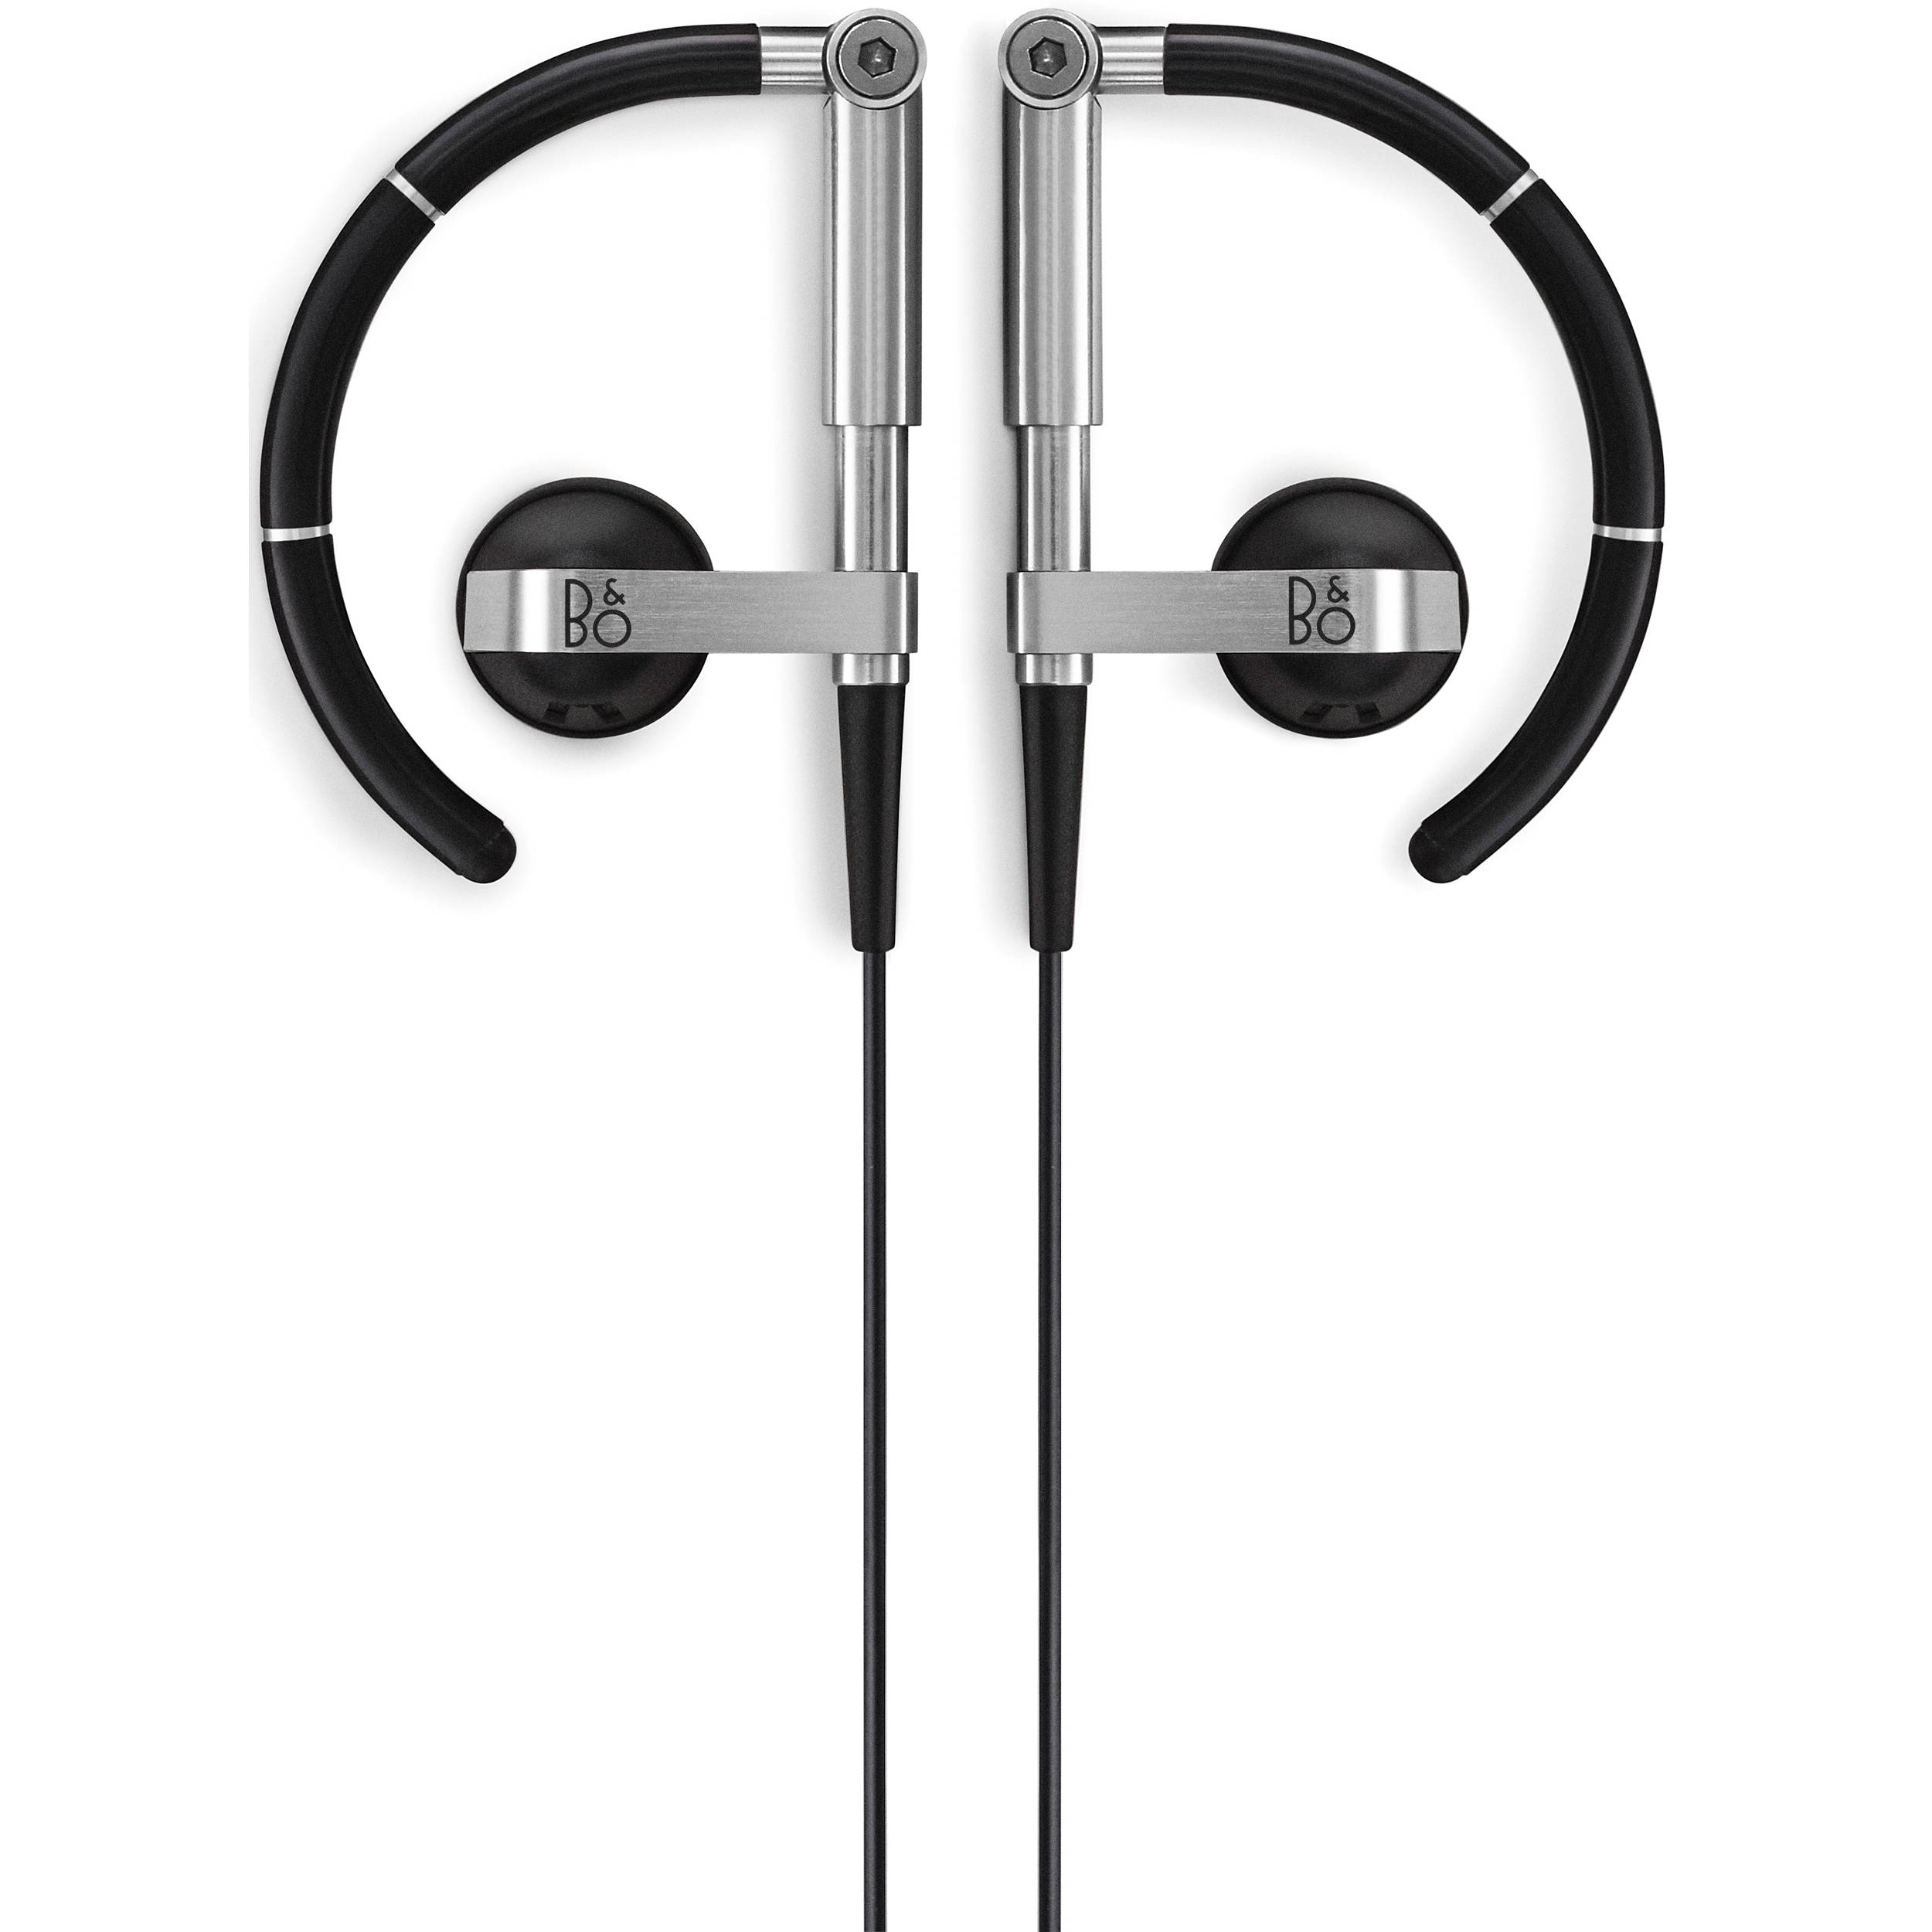 bang_olufsen_1108426_earset_3i_with_remote_1127447